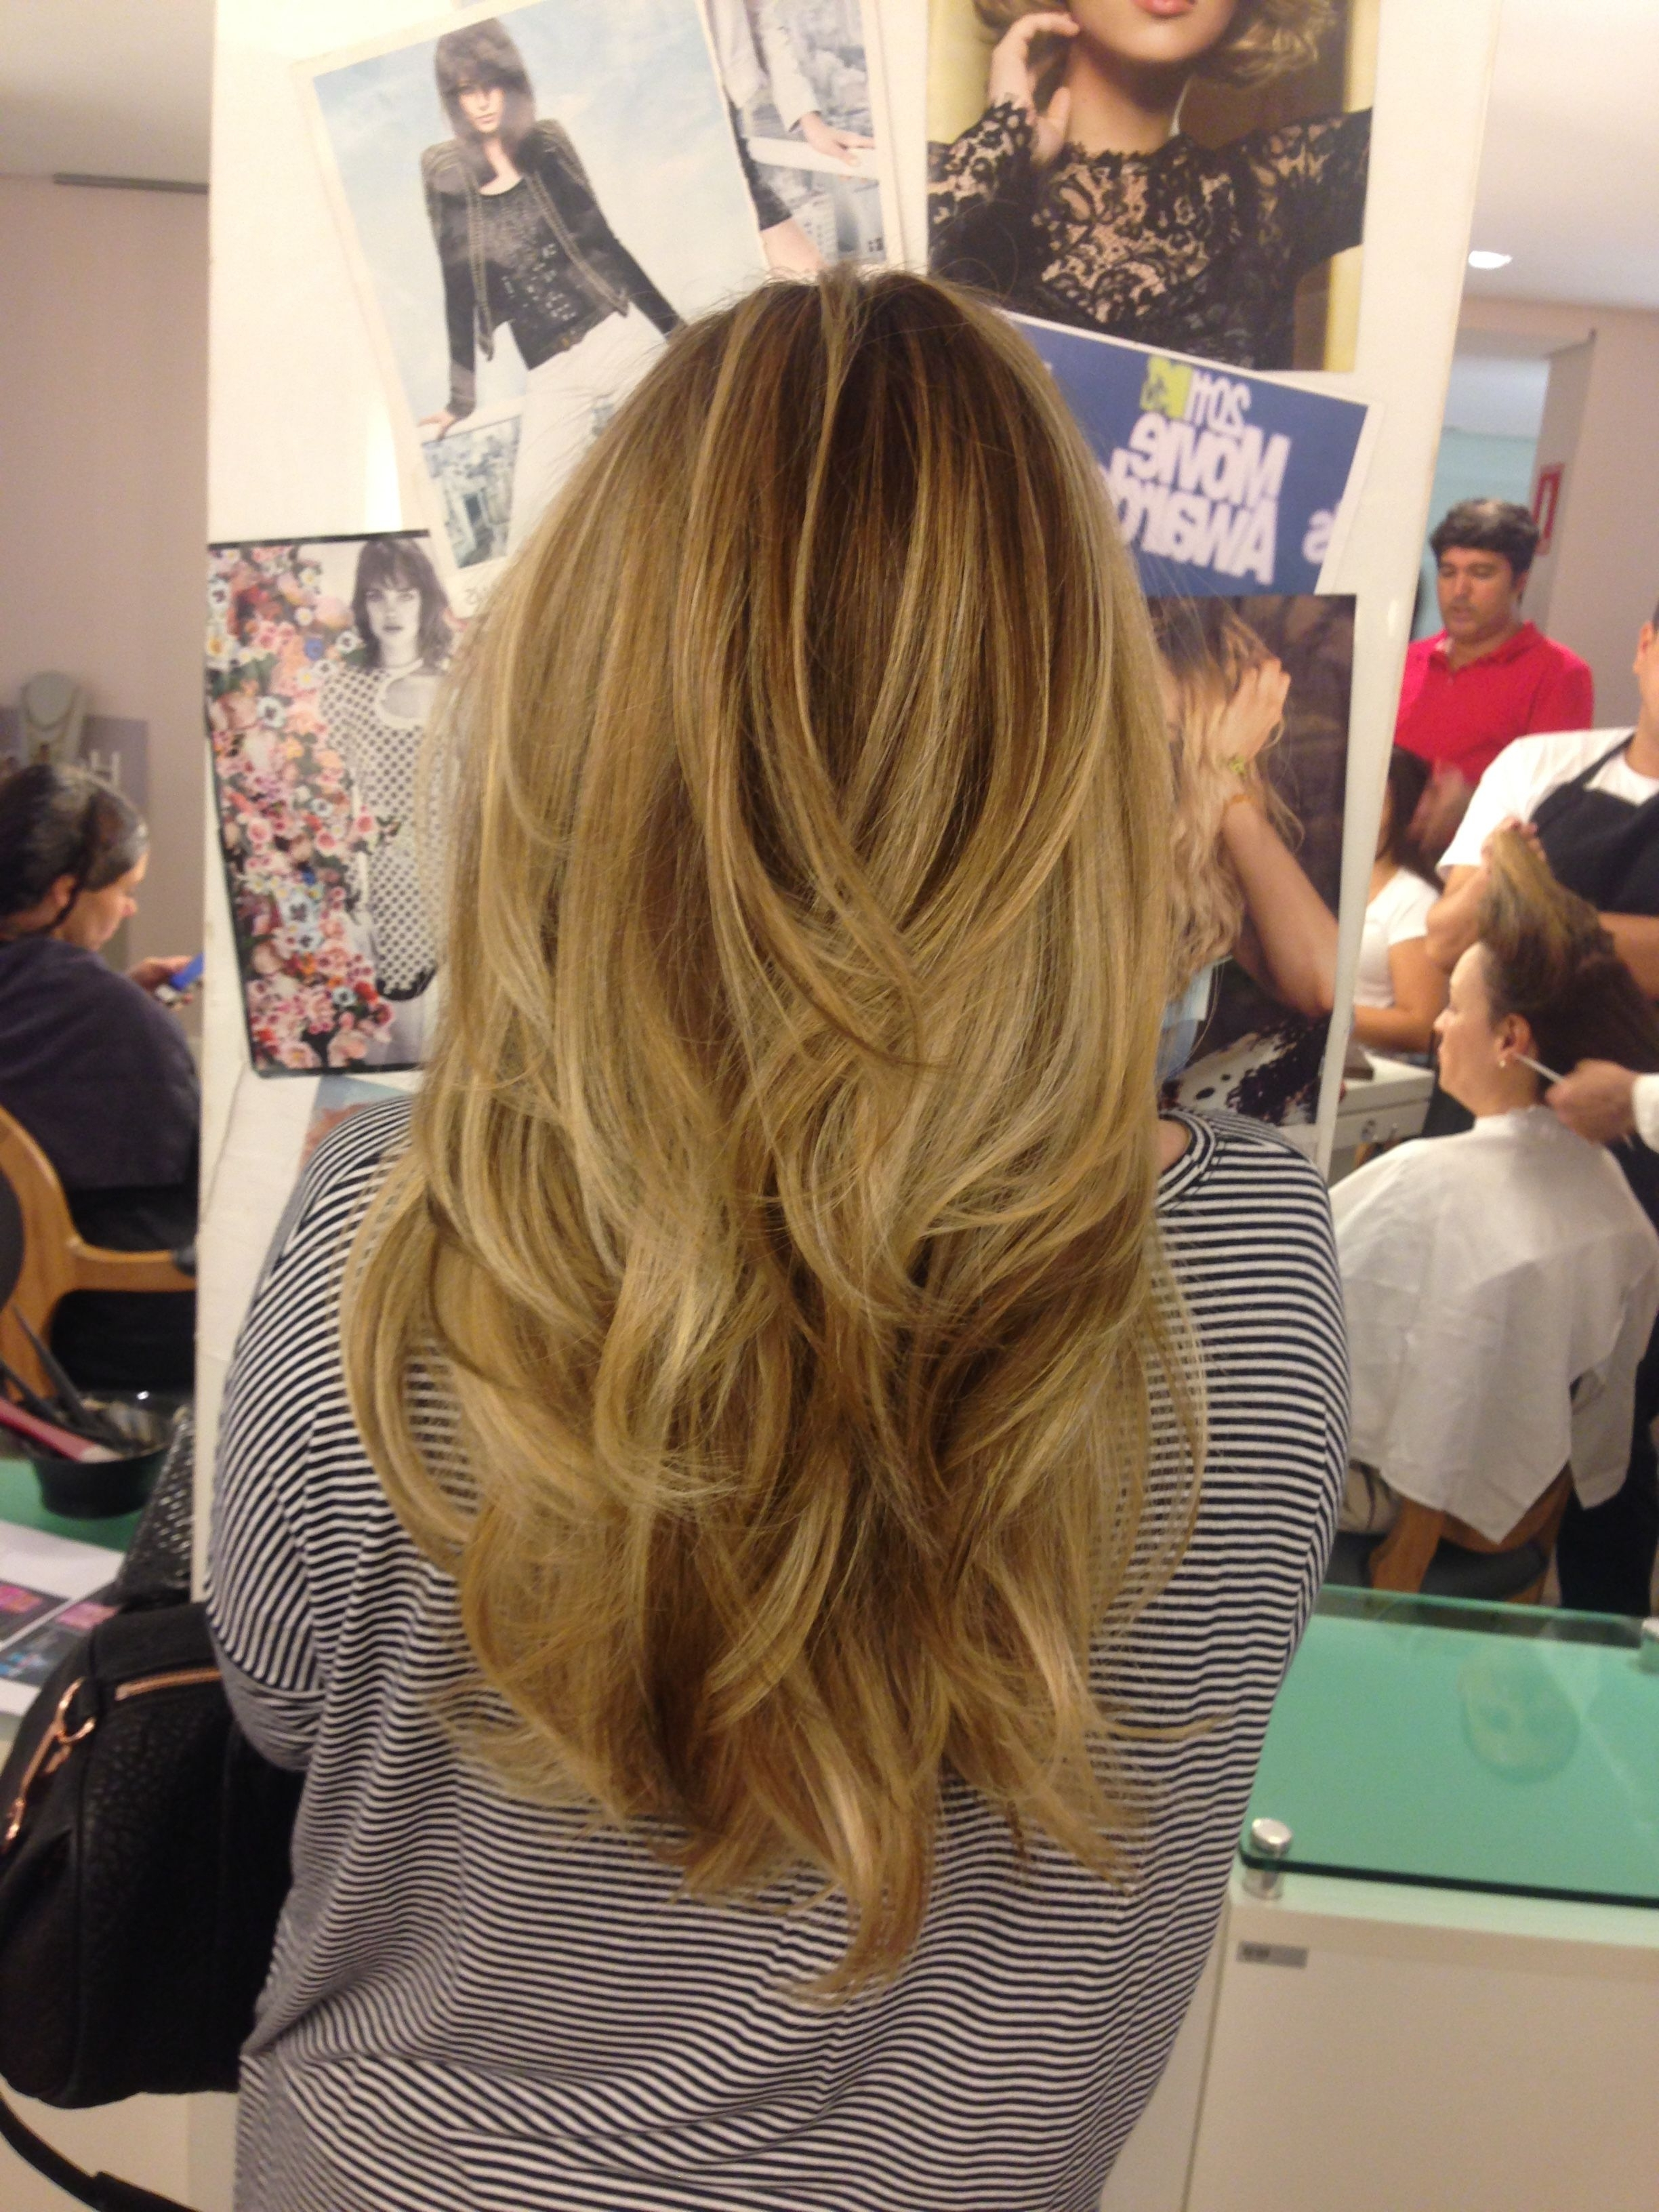 This Is Me Back To Blond Hair! Some Would Call It Ombré, Others Pertaining To Current Tortoiseshell Curls Blonde Hairstyles (View 14 of 20)